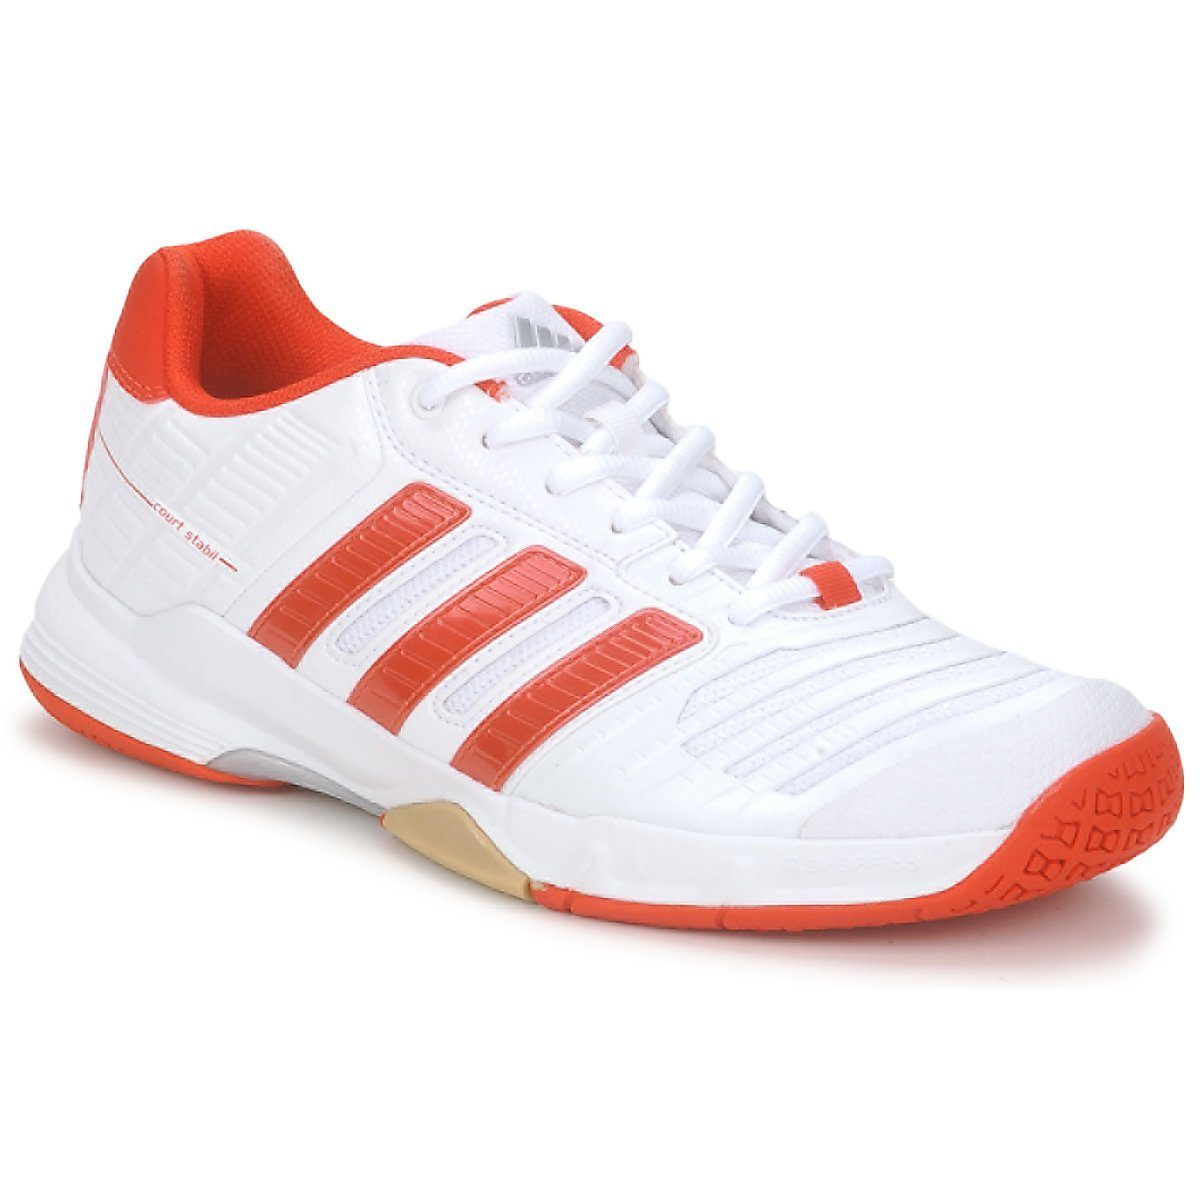 Adidas Court Stabil 10 Women - White and Red